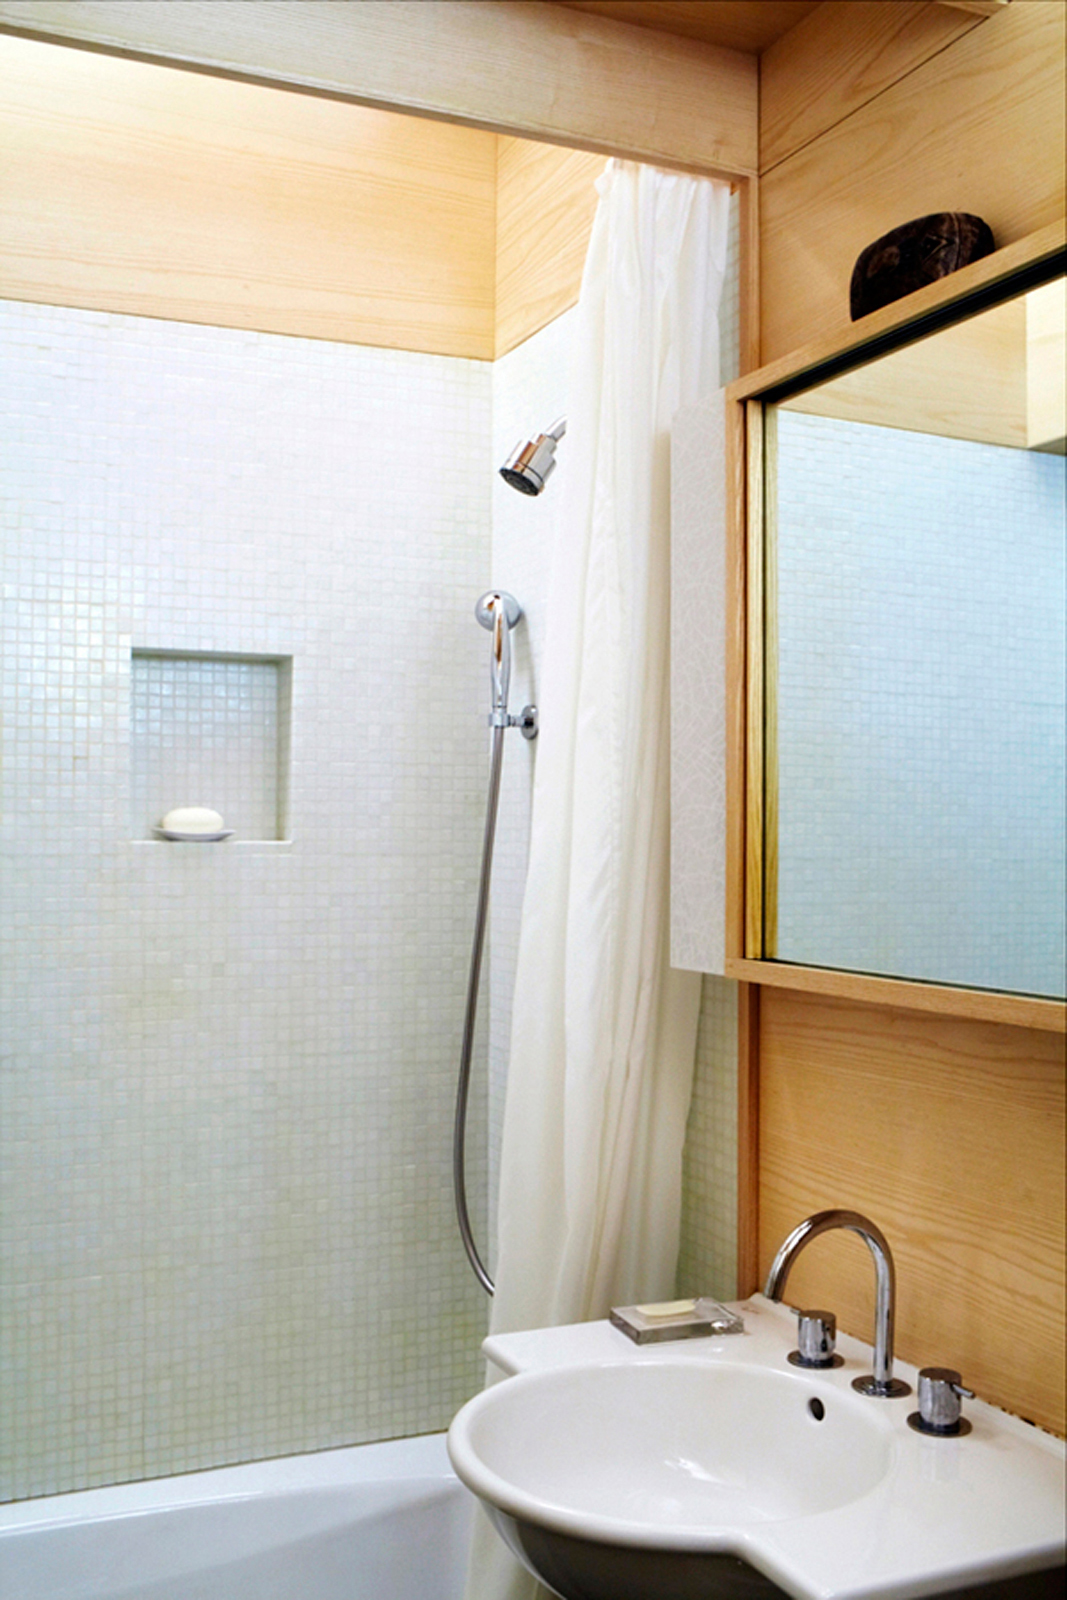 Bathroom of small space apartment in New York City